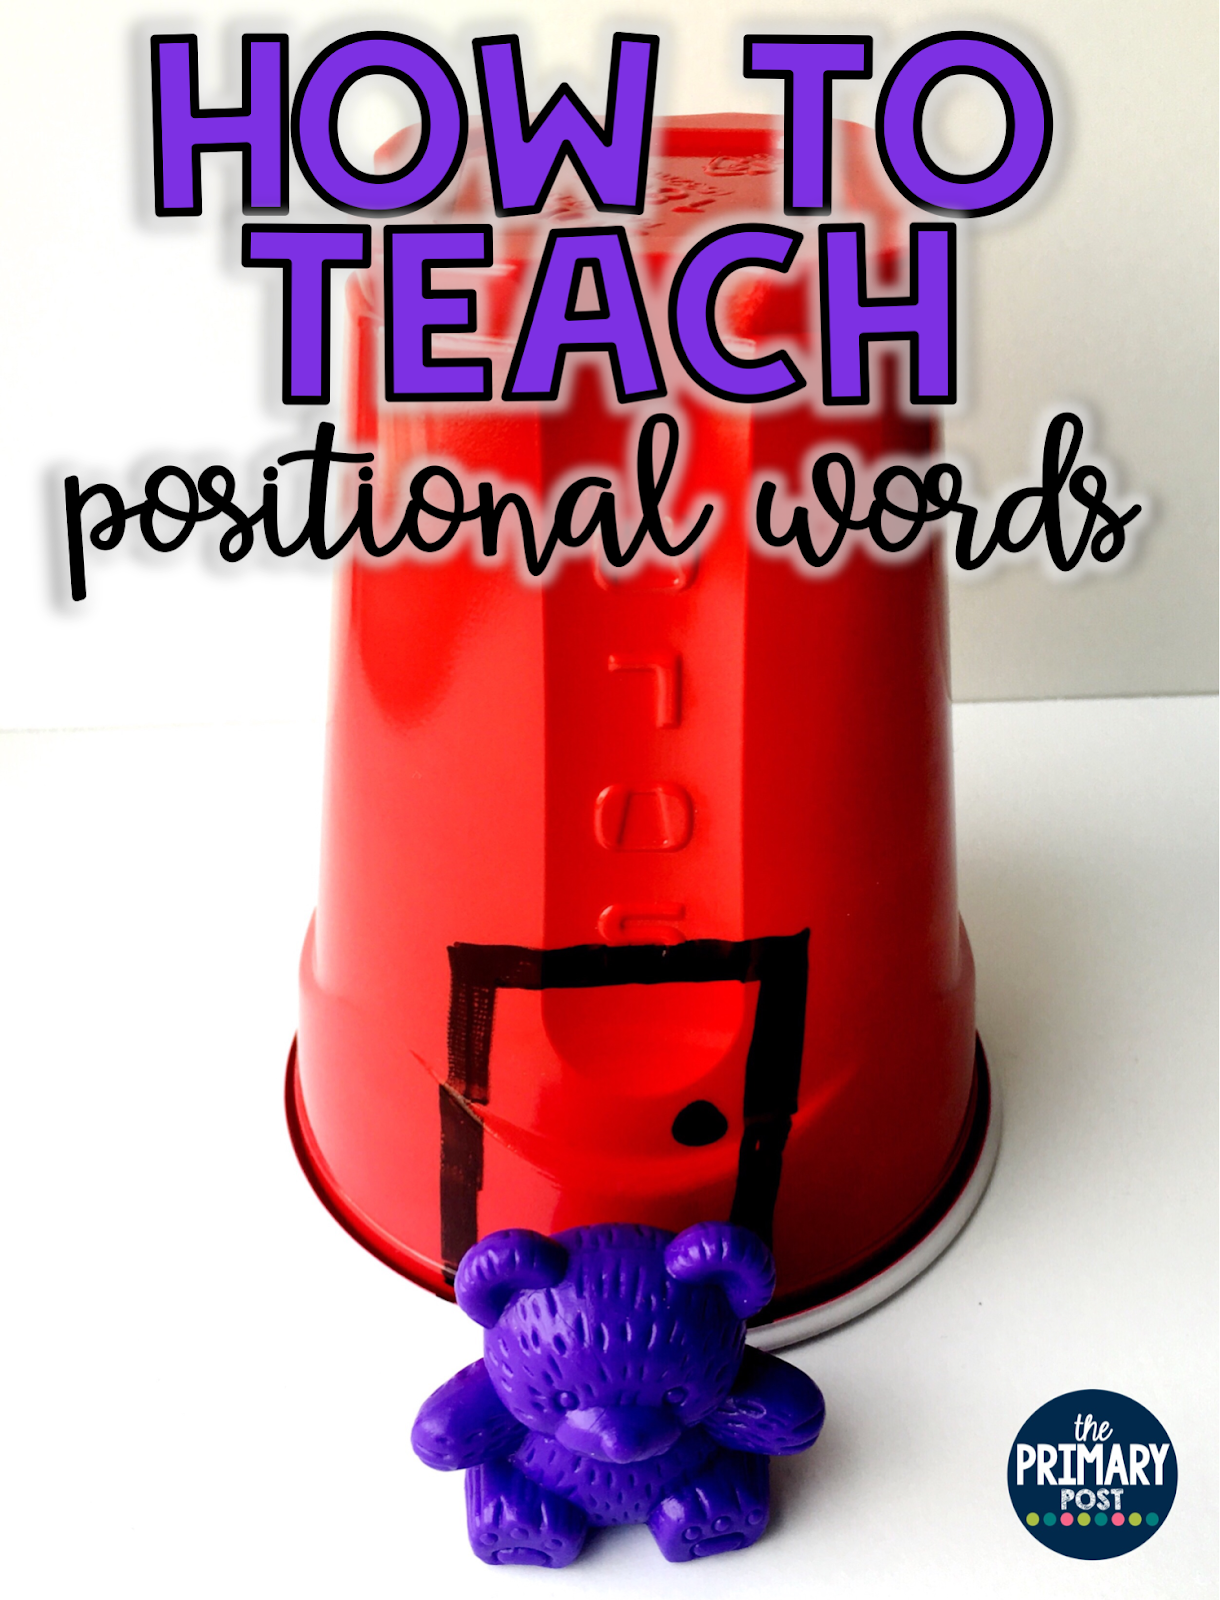 positional words the primary post